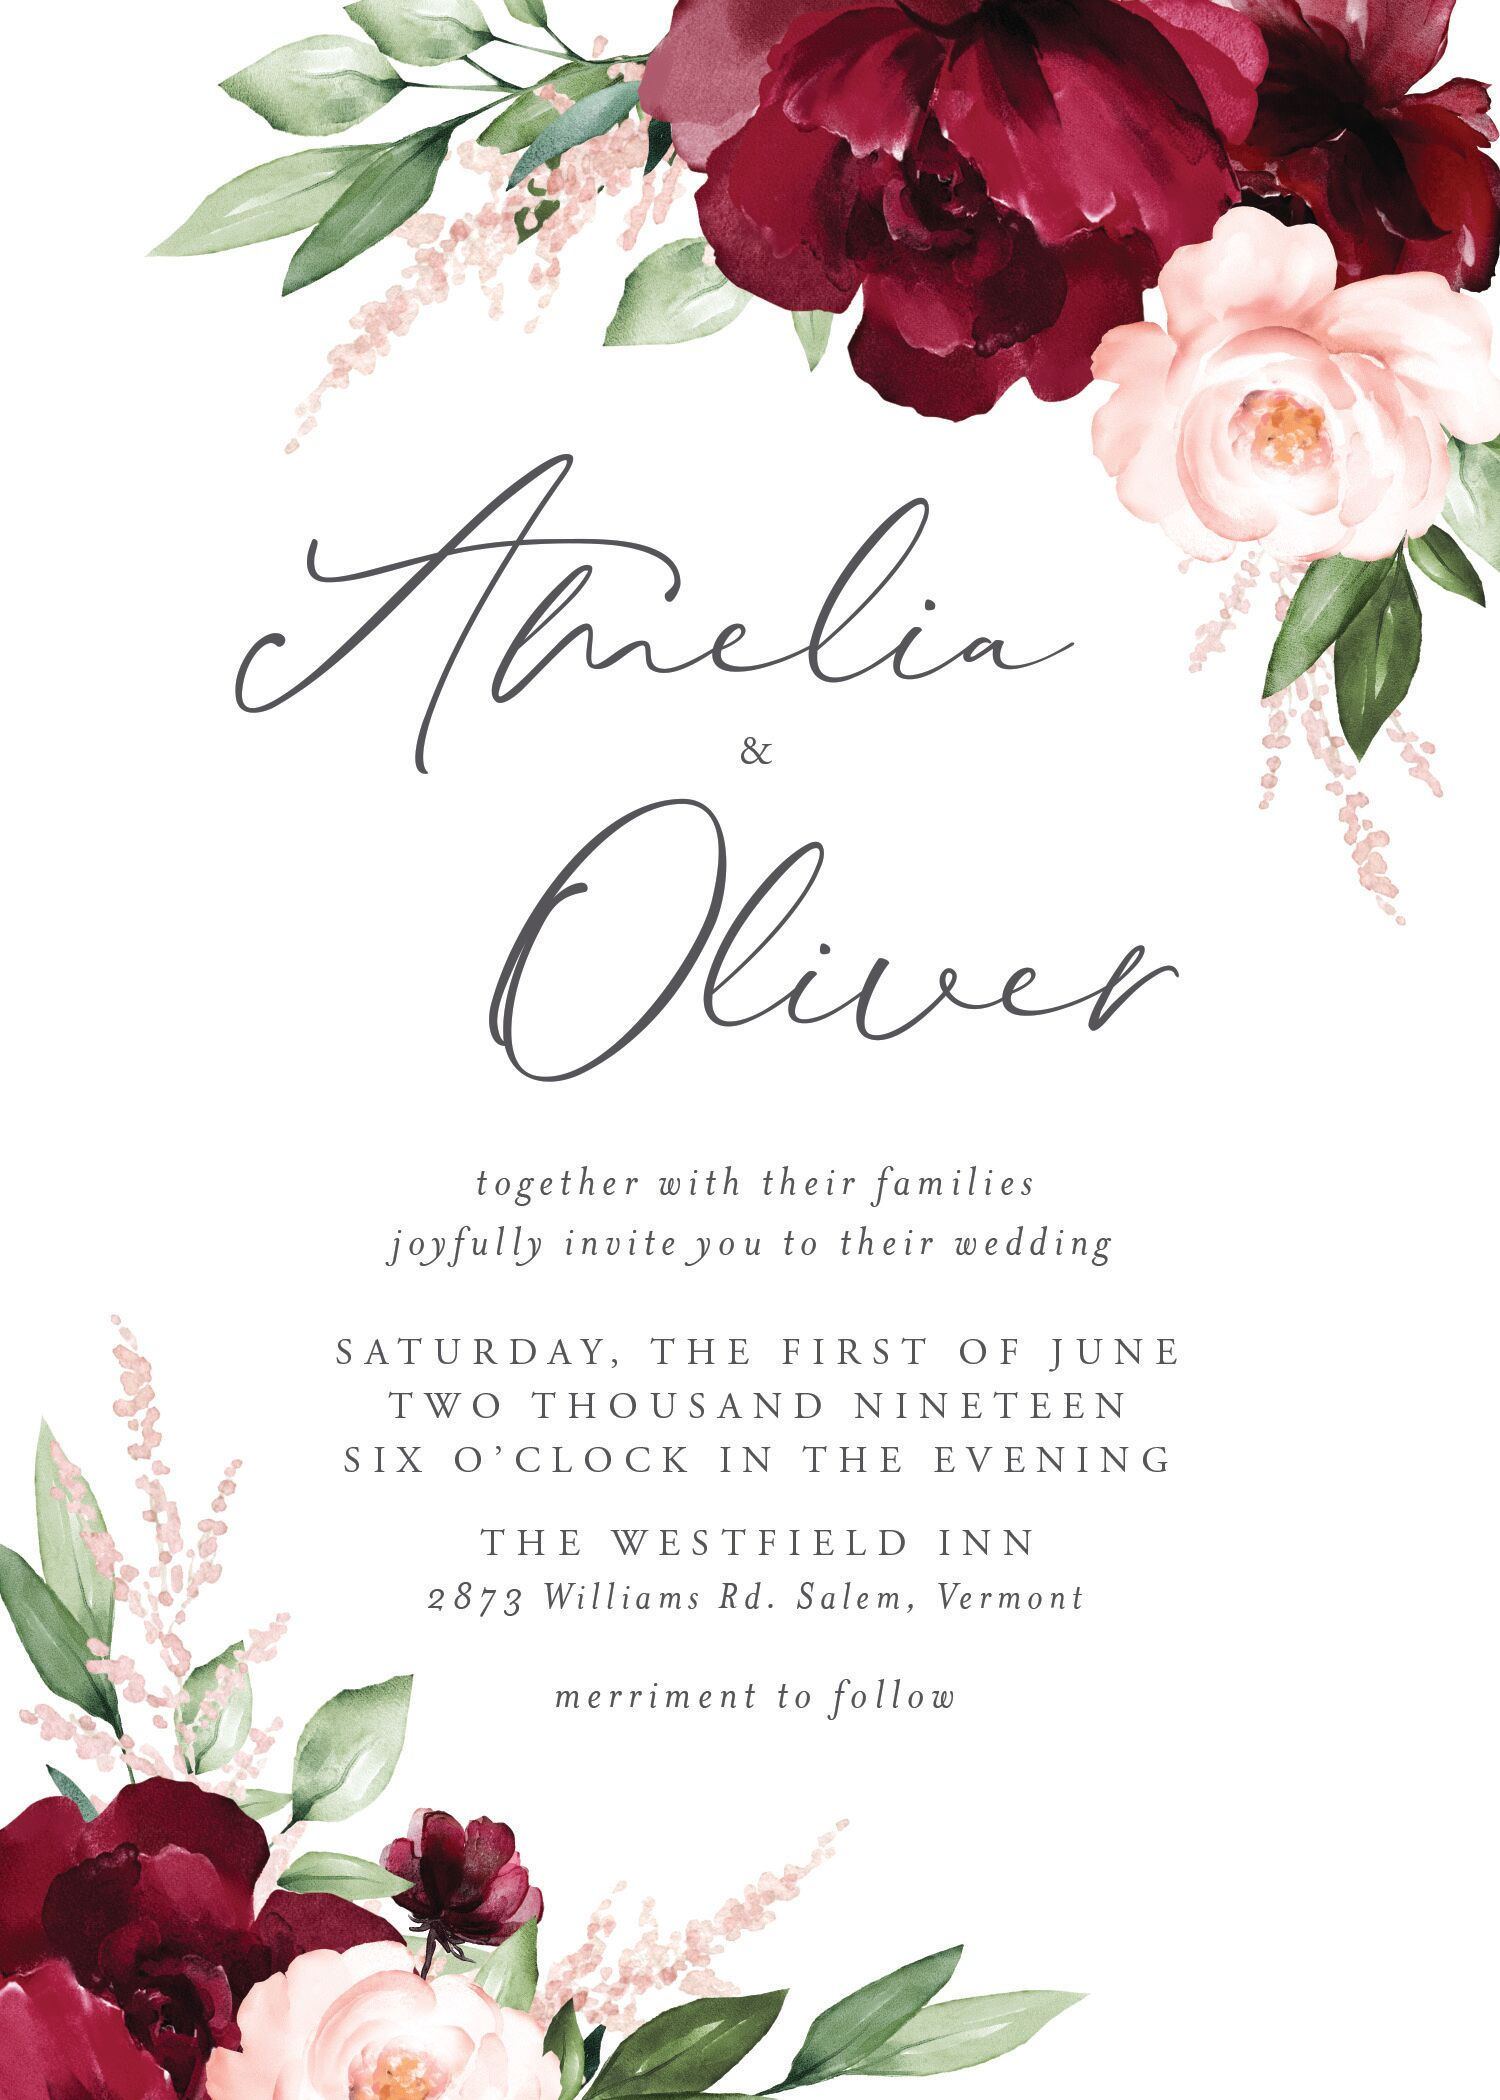 Customizable wedding invitation featuring a script font over a neutral background with vibrant flowers at opposing corners.